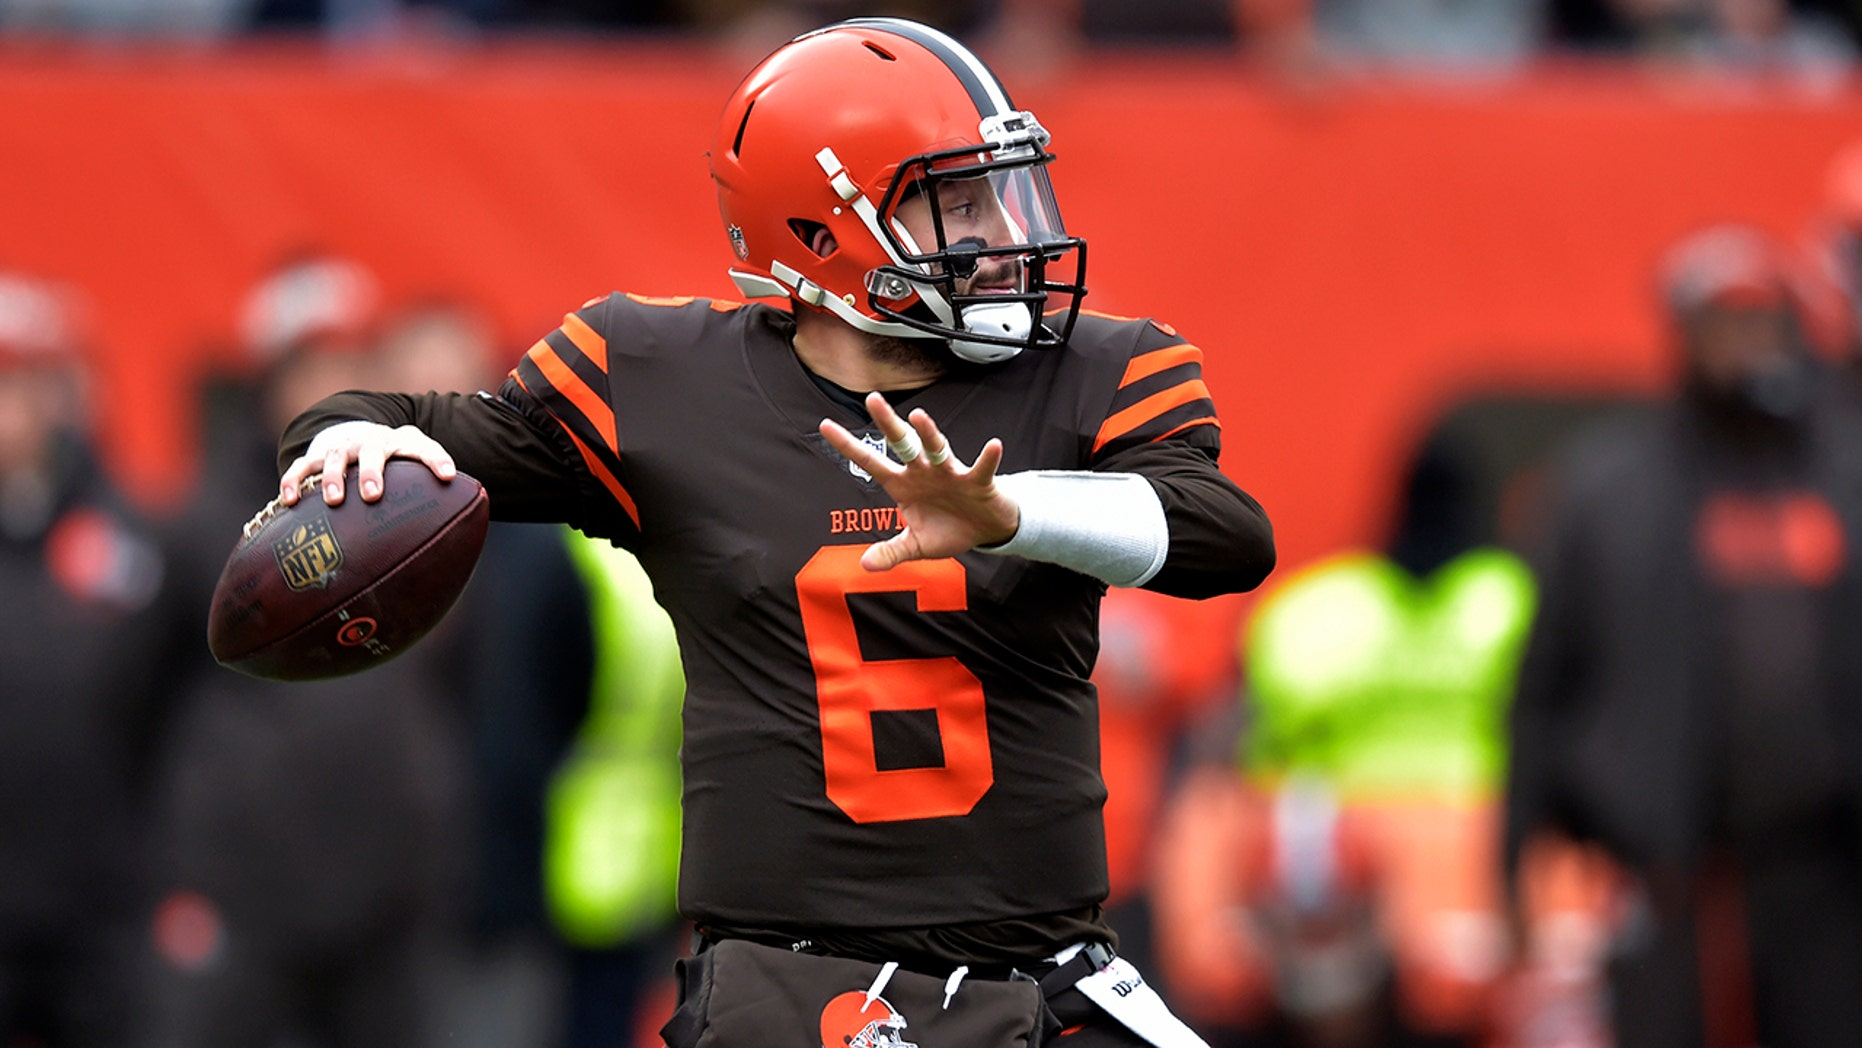 Mayfield's 3 TD passes humble old coach, Bengals